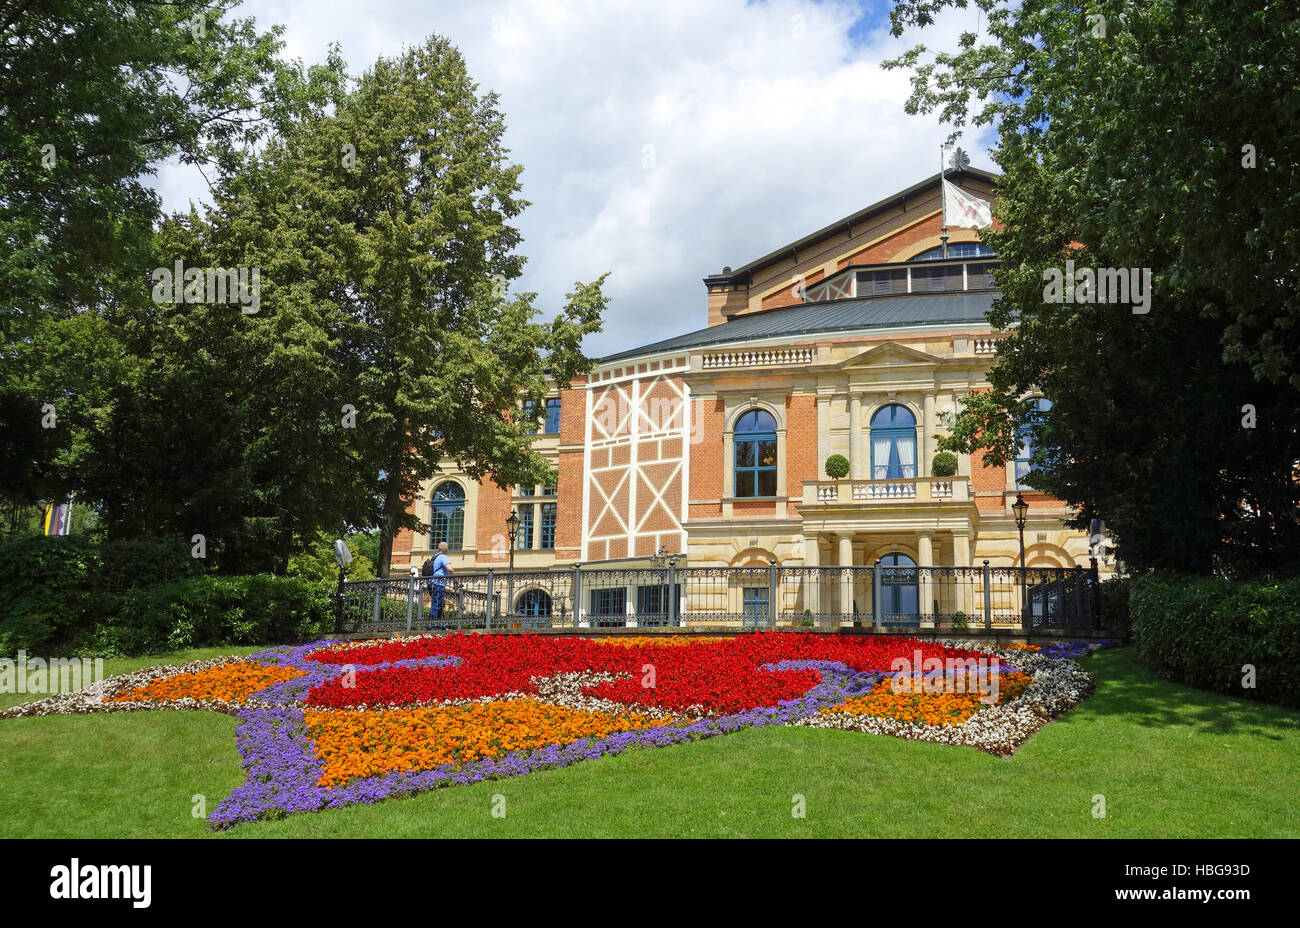 opera house bayreuth, germany - Stock Image